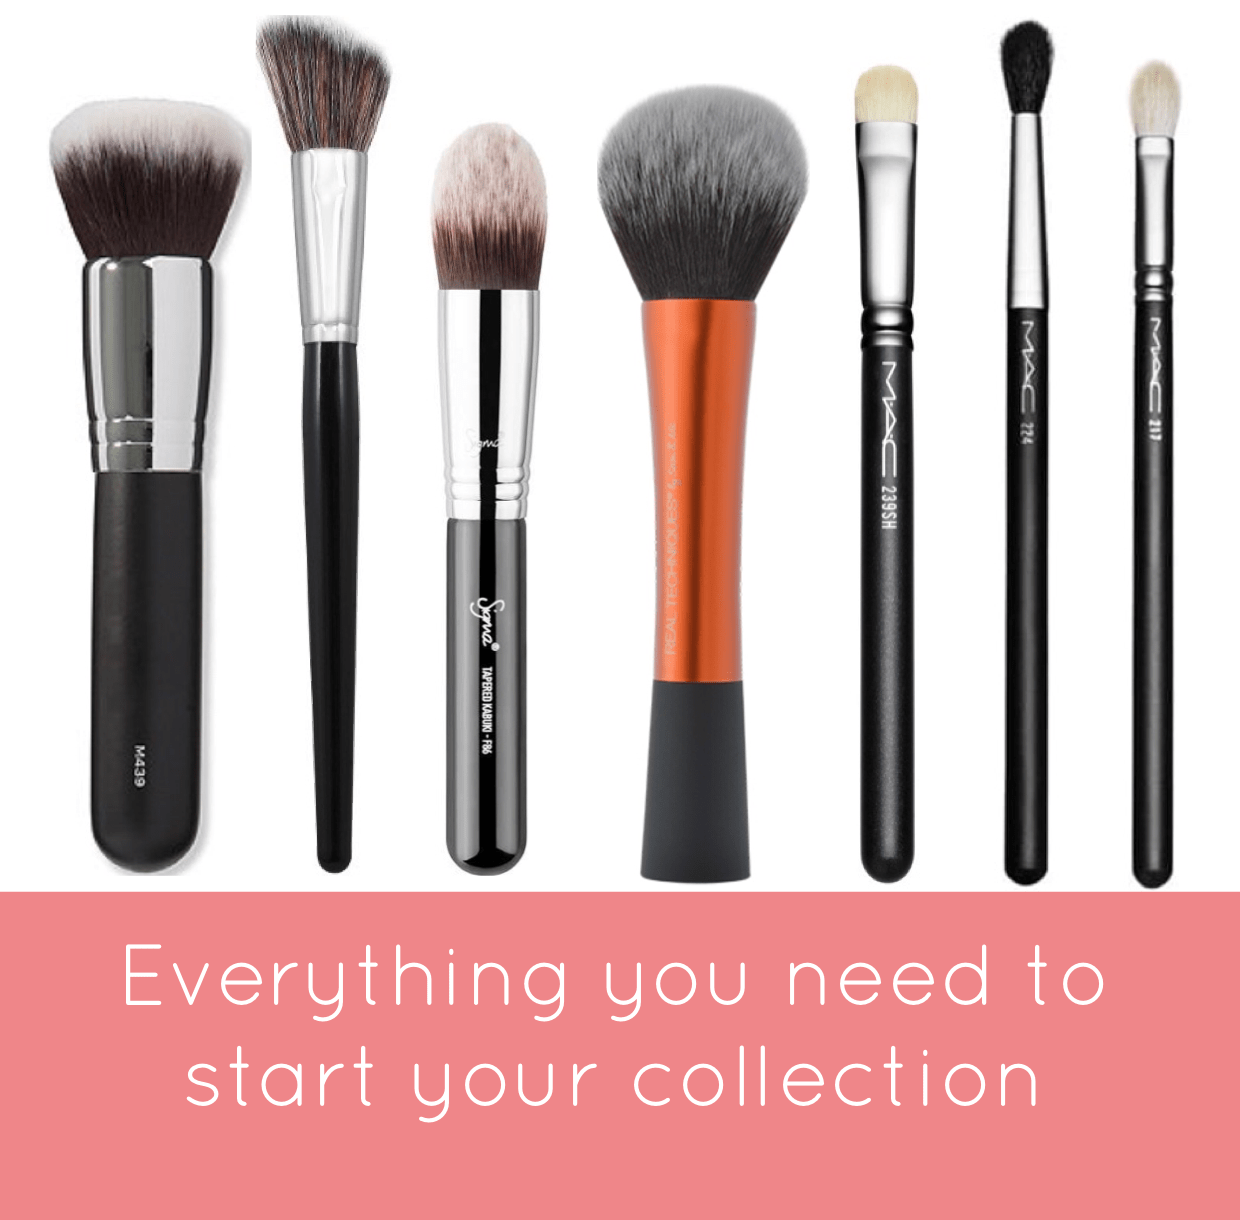 Your complete guide to the best makeup brushes for